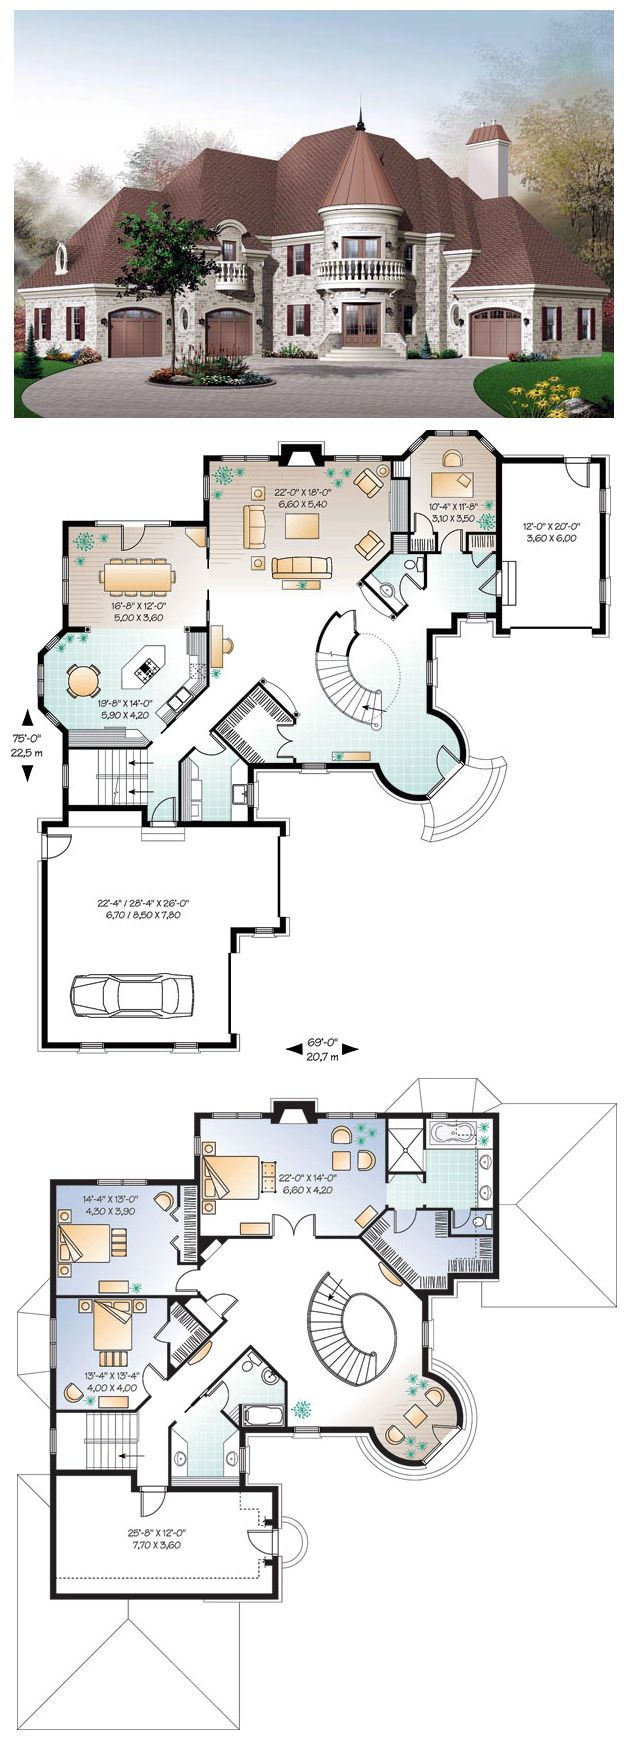 Victorian Style House Plan 65361 With 3 Bed 3 Bath 2 Car Garage House Plans Mansion Victorian House Plans House Blueprints